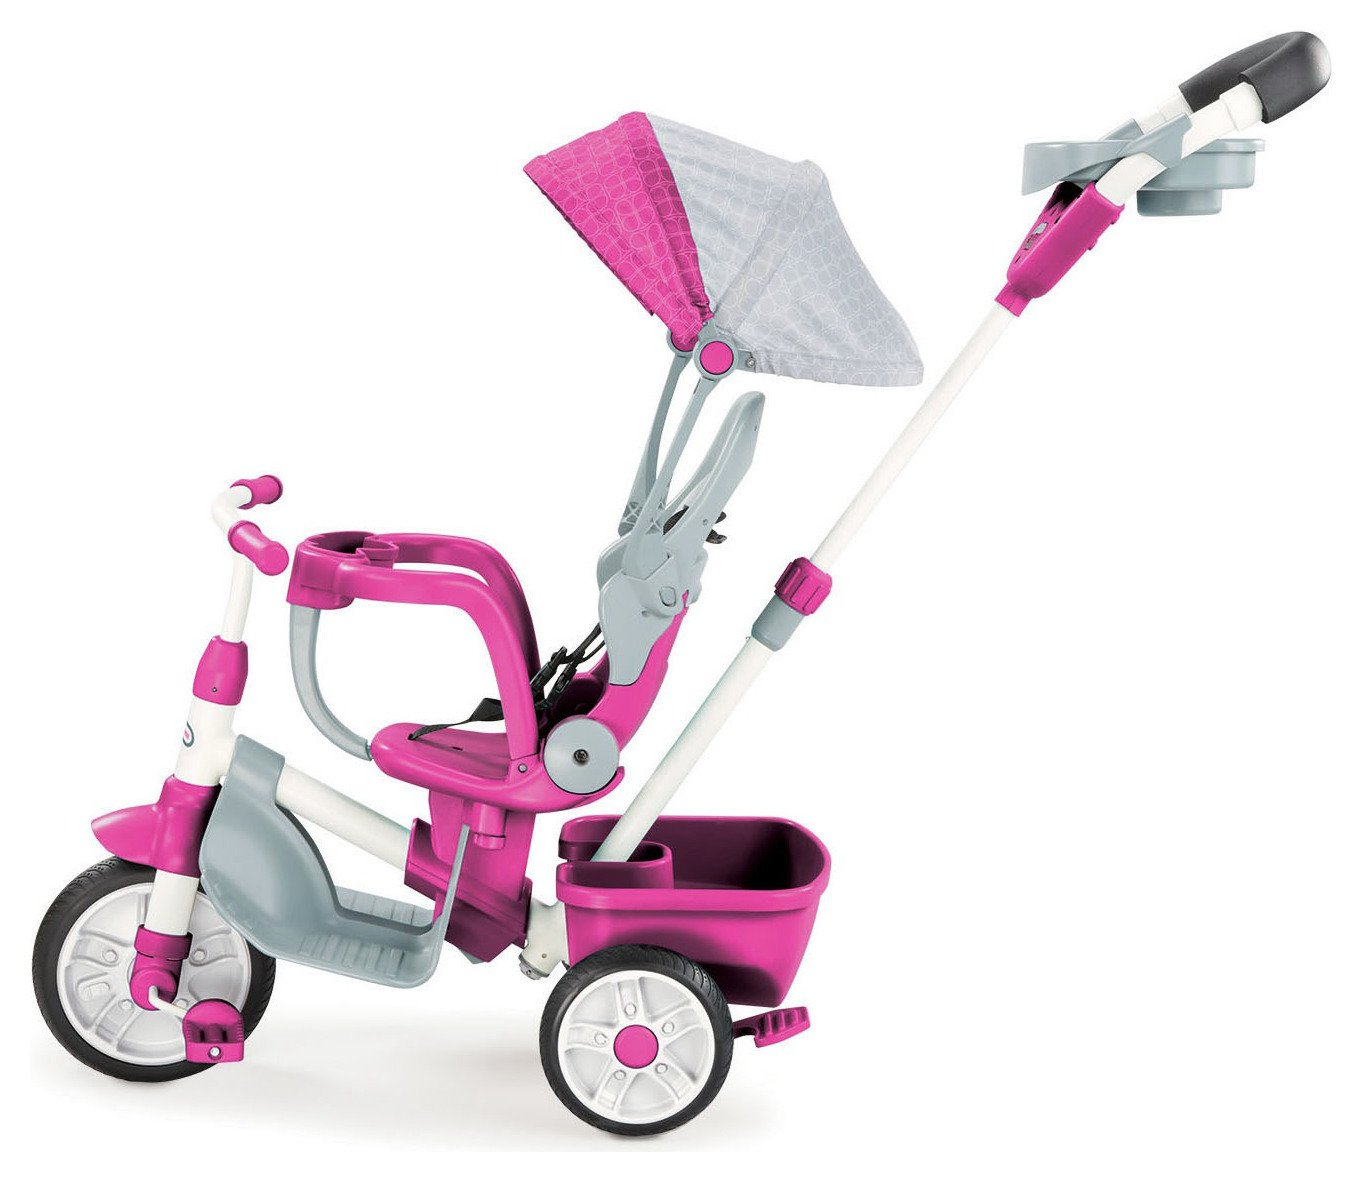 Image of Little Tikes 4-in-1 Perfect Fit Trike - Pink